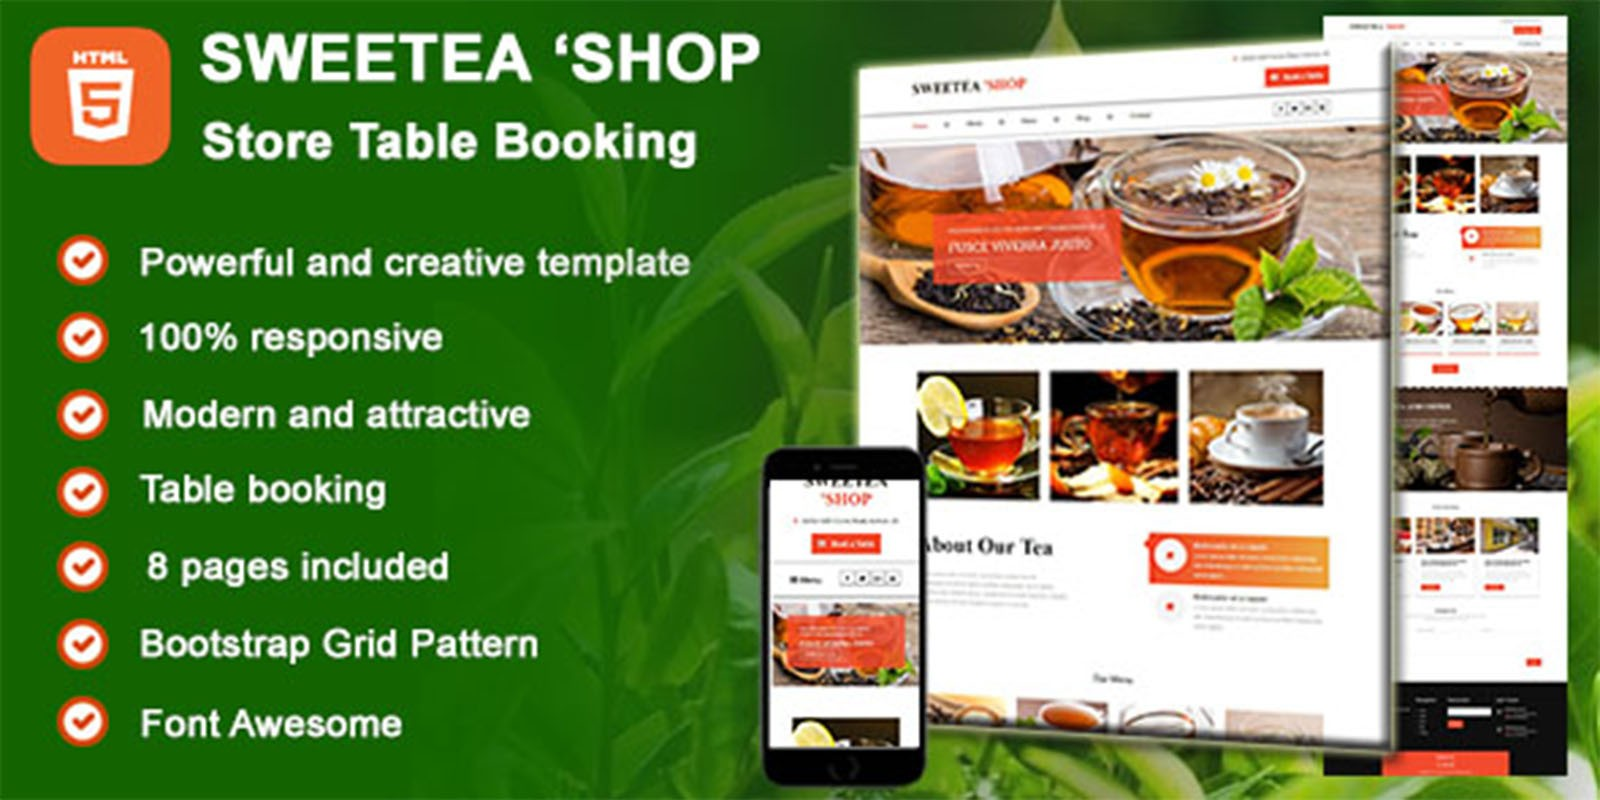 Sweetea Shop - HTML Tea Store Table Booking